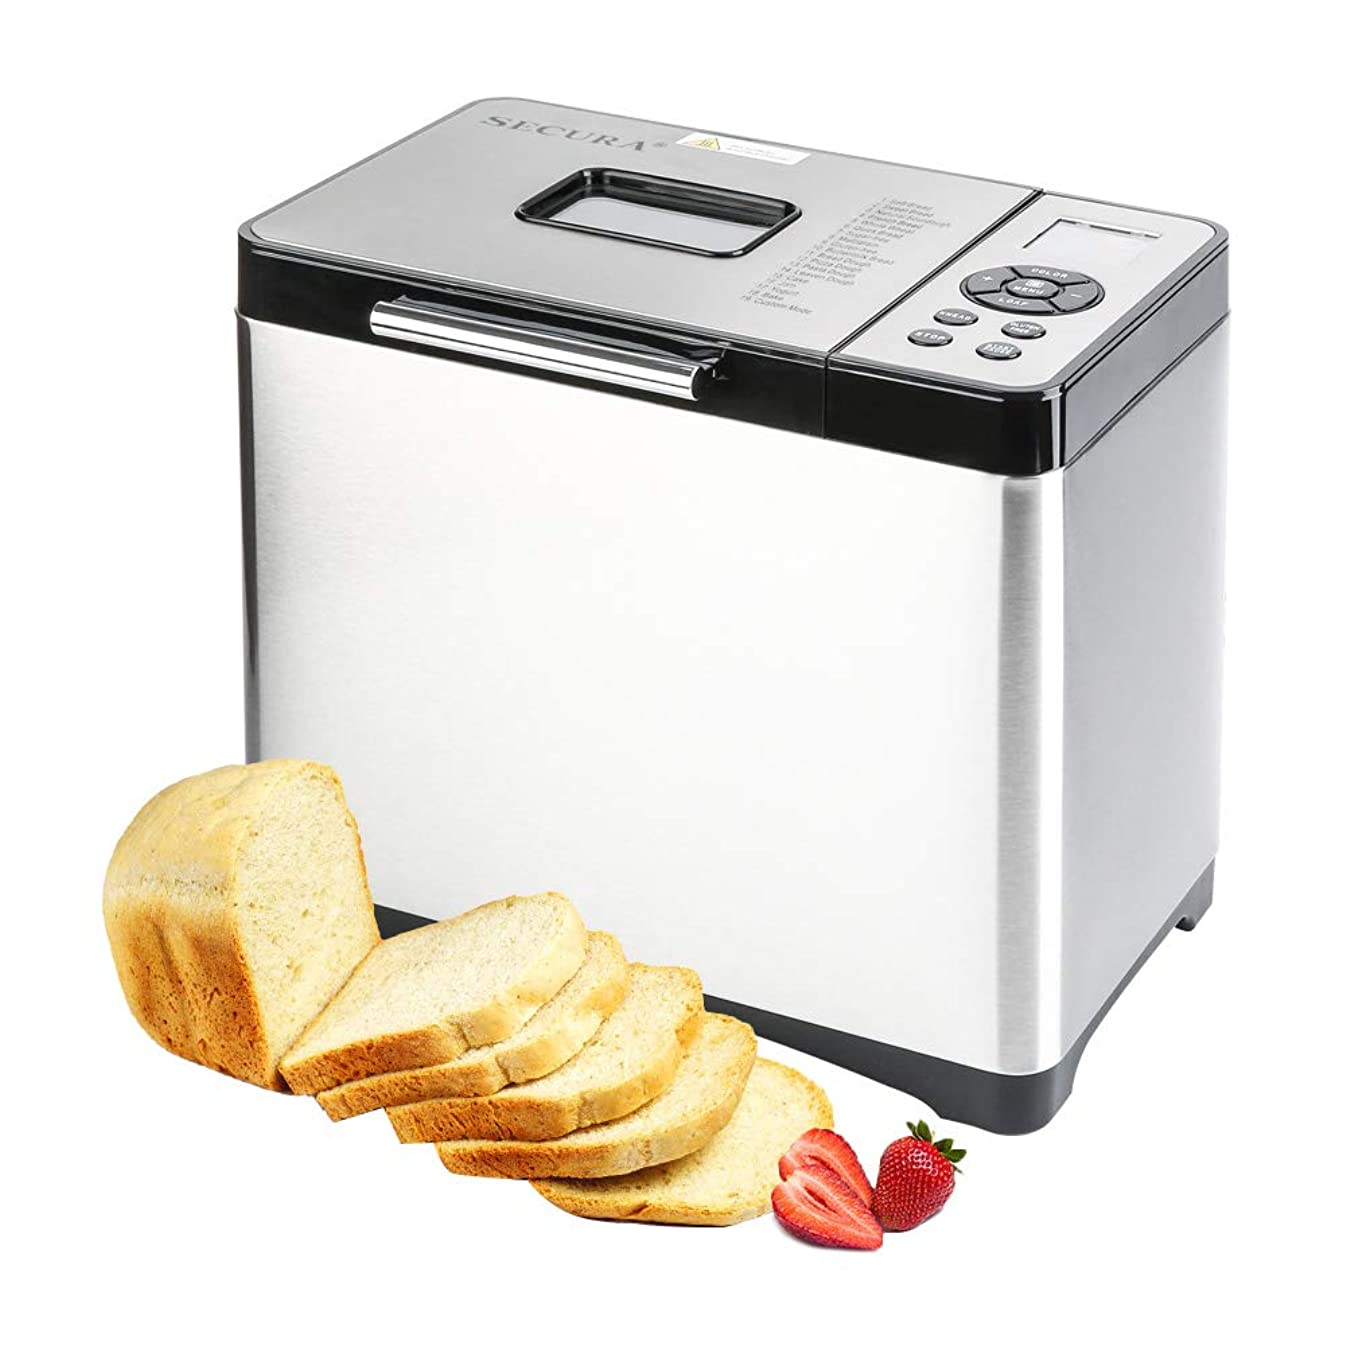 Secura Bread Maker 2.2 Pound Toaster Machine MBF-016 Multi-Use Programmable, 19 Menu Settings for Home Bakery, Stainless Steel